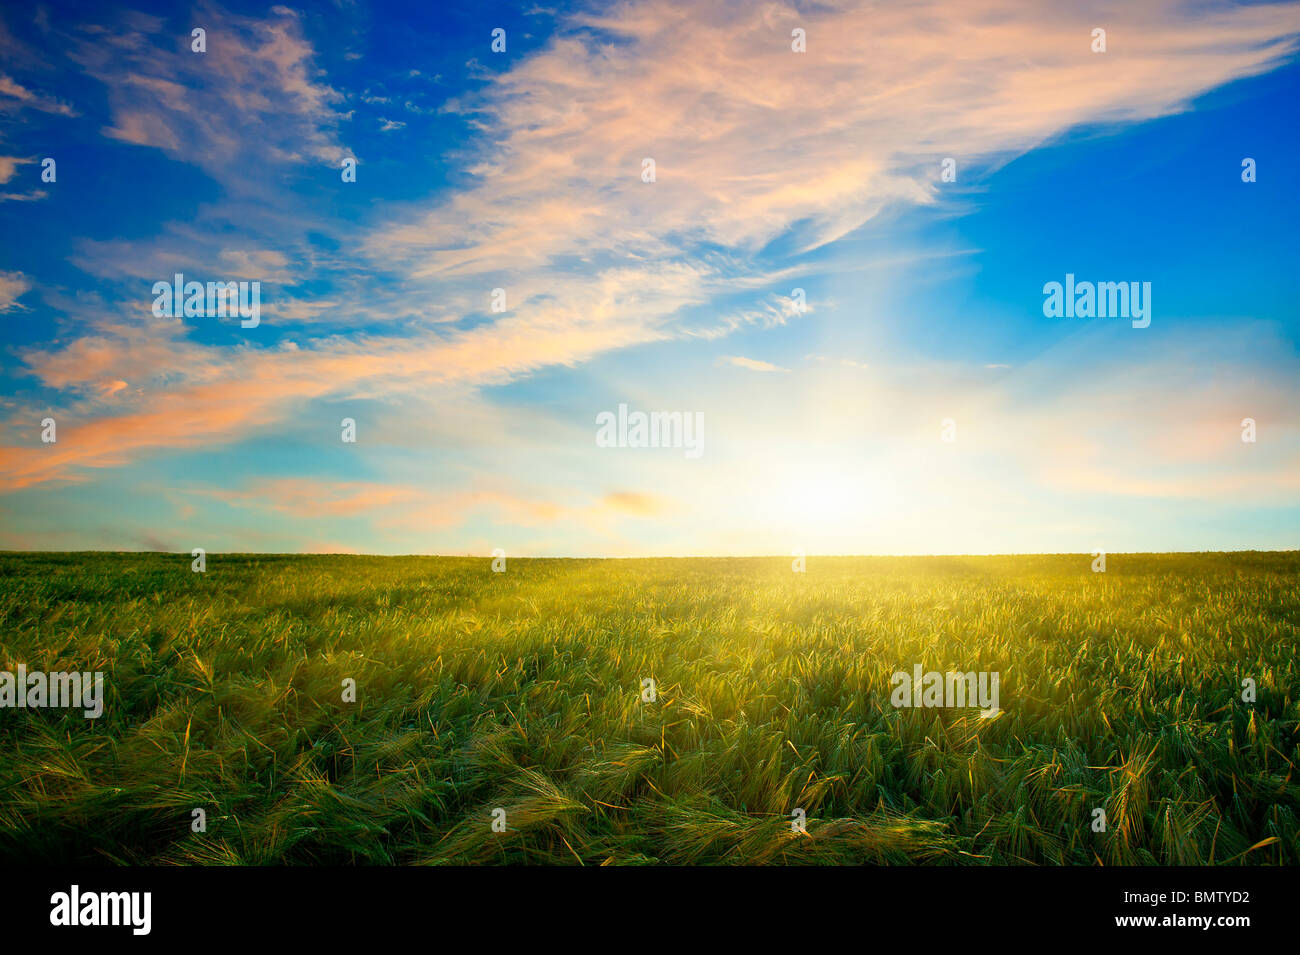 SUNSET OVER WHEAT FIELD Stock Foto